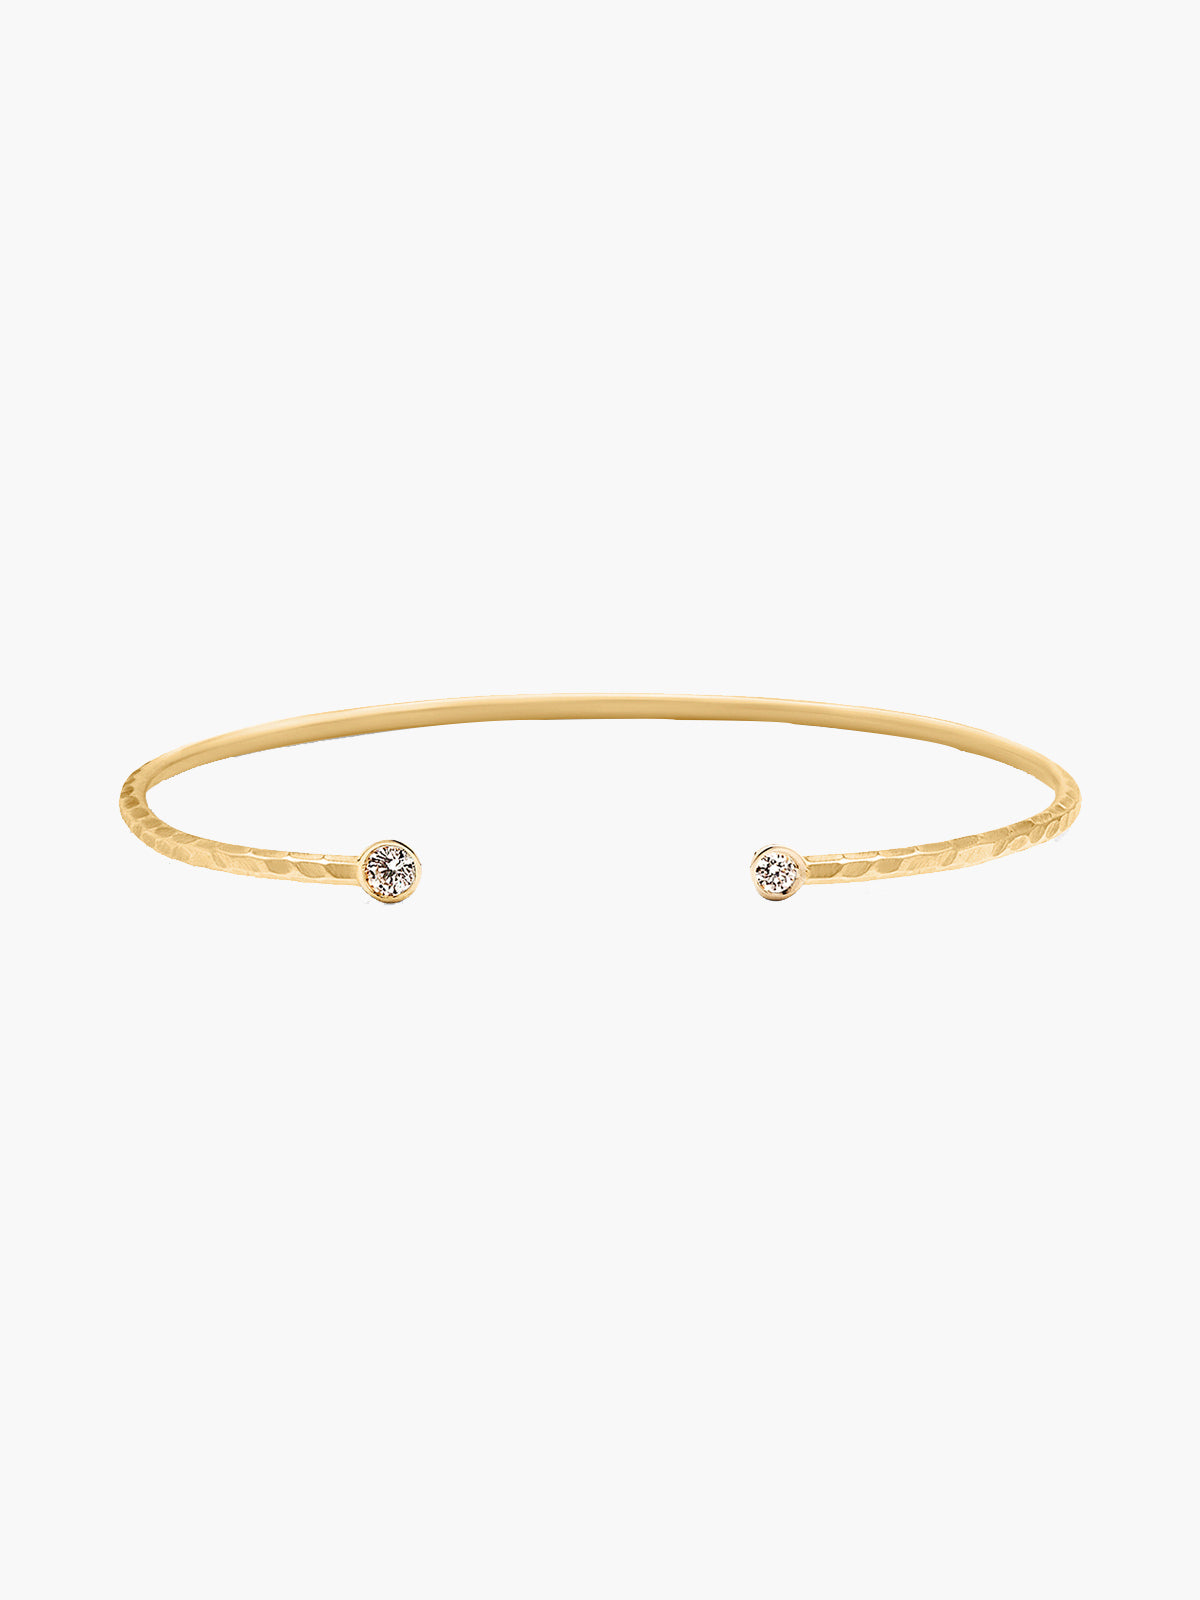 Double Diamond Open Cuff | Hammered Double Diamond Open Cuff | Hammered